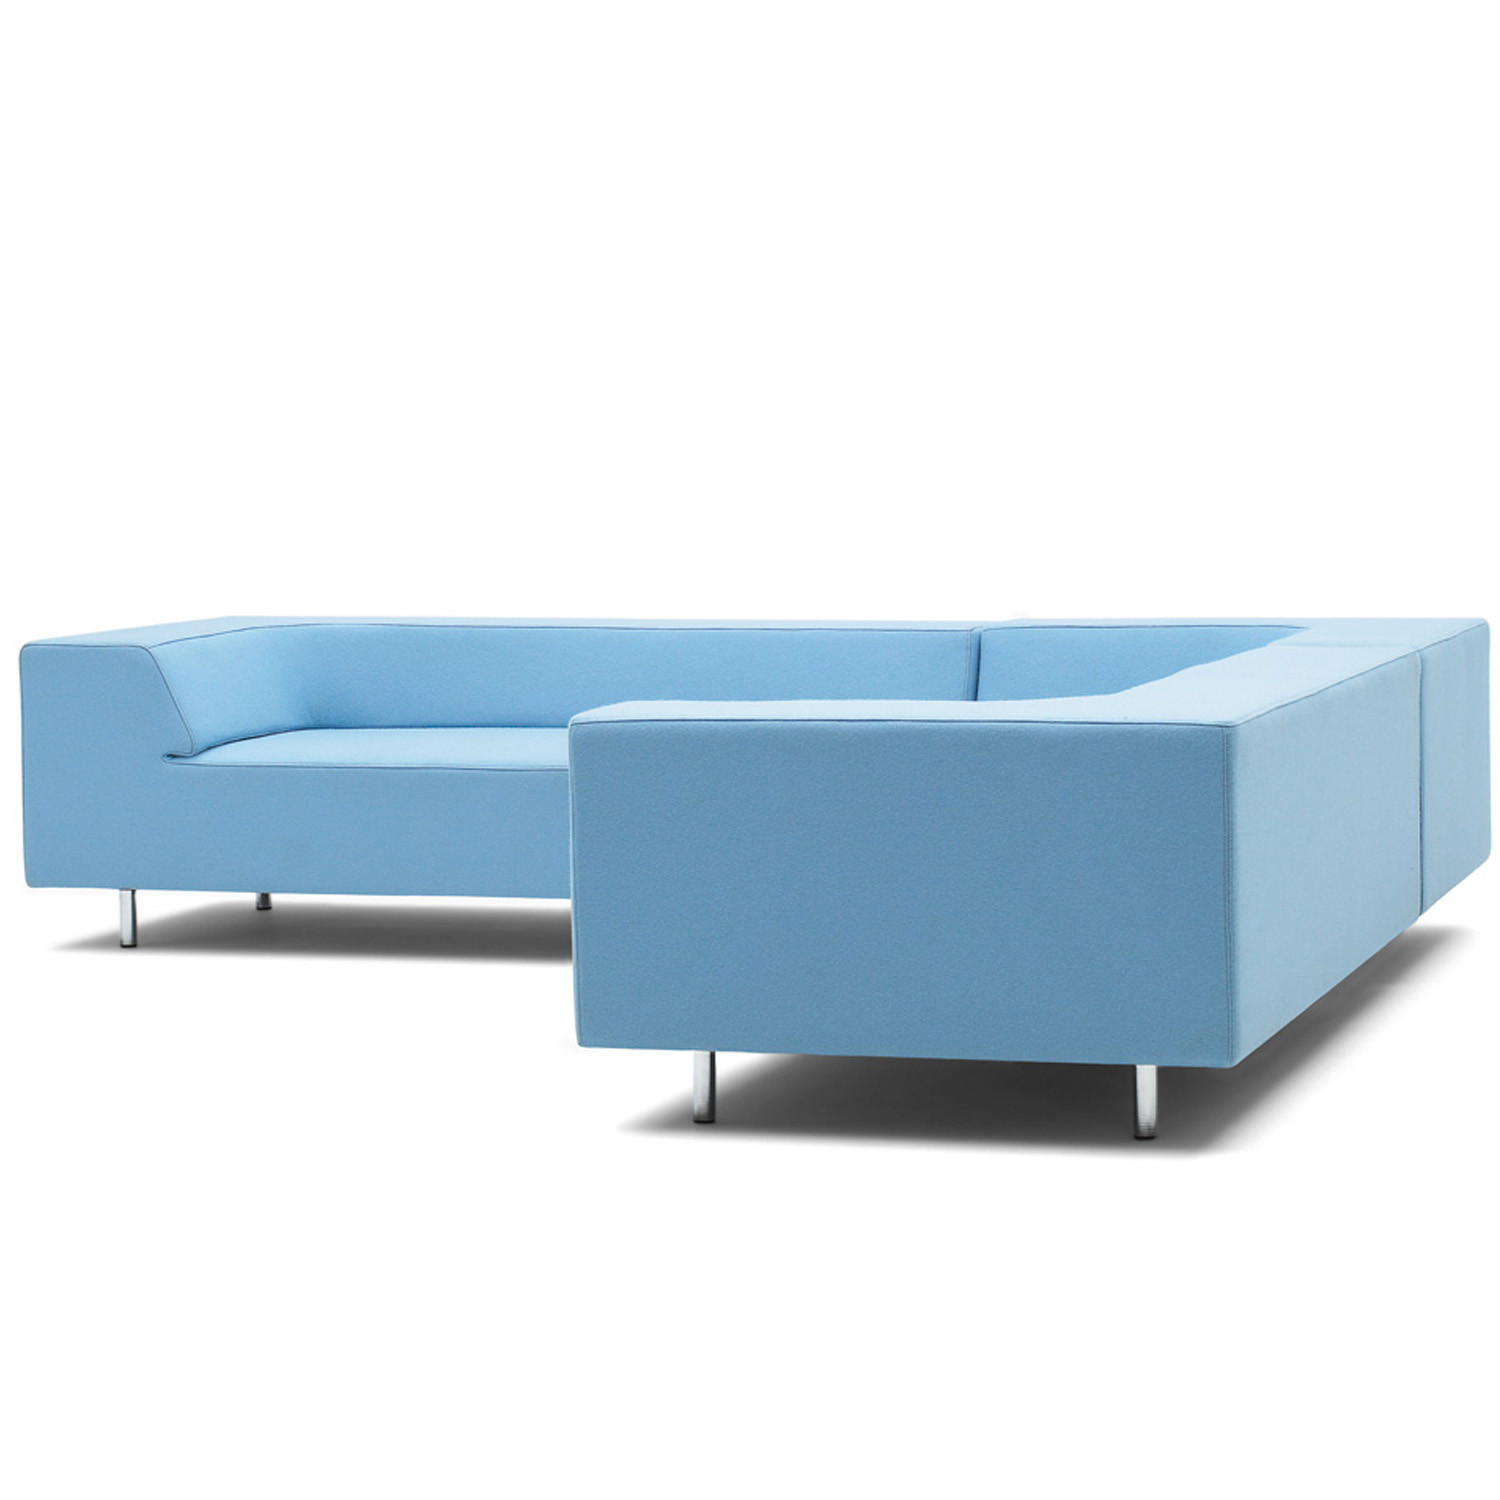 foam block sofa bed leather sofas indianapolis easy modular soft seating apres furniture